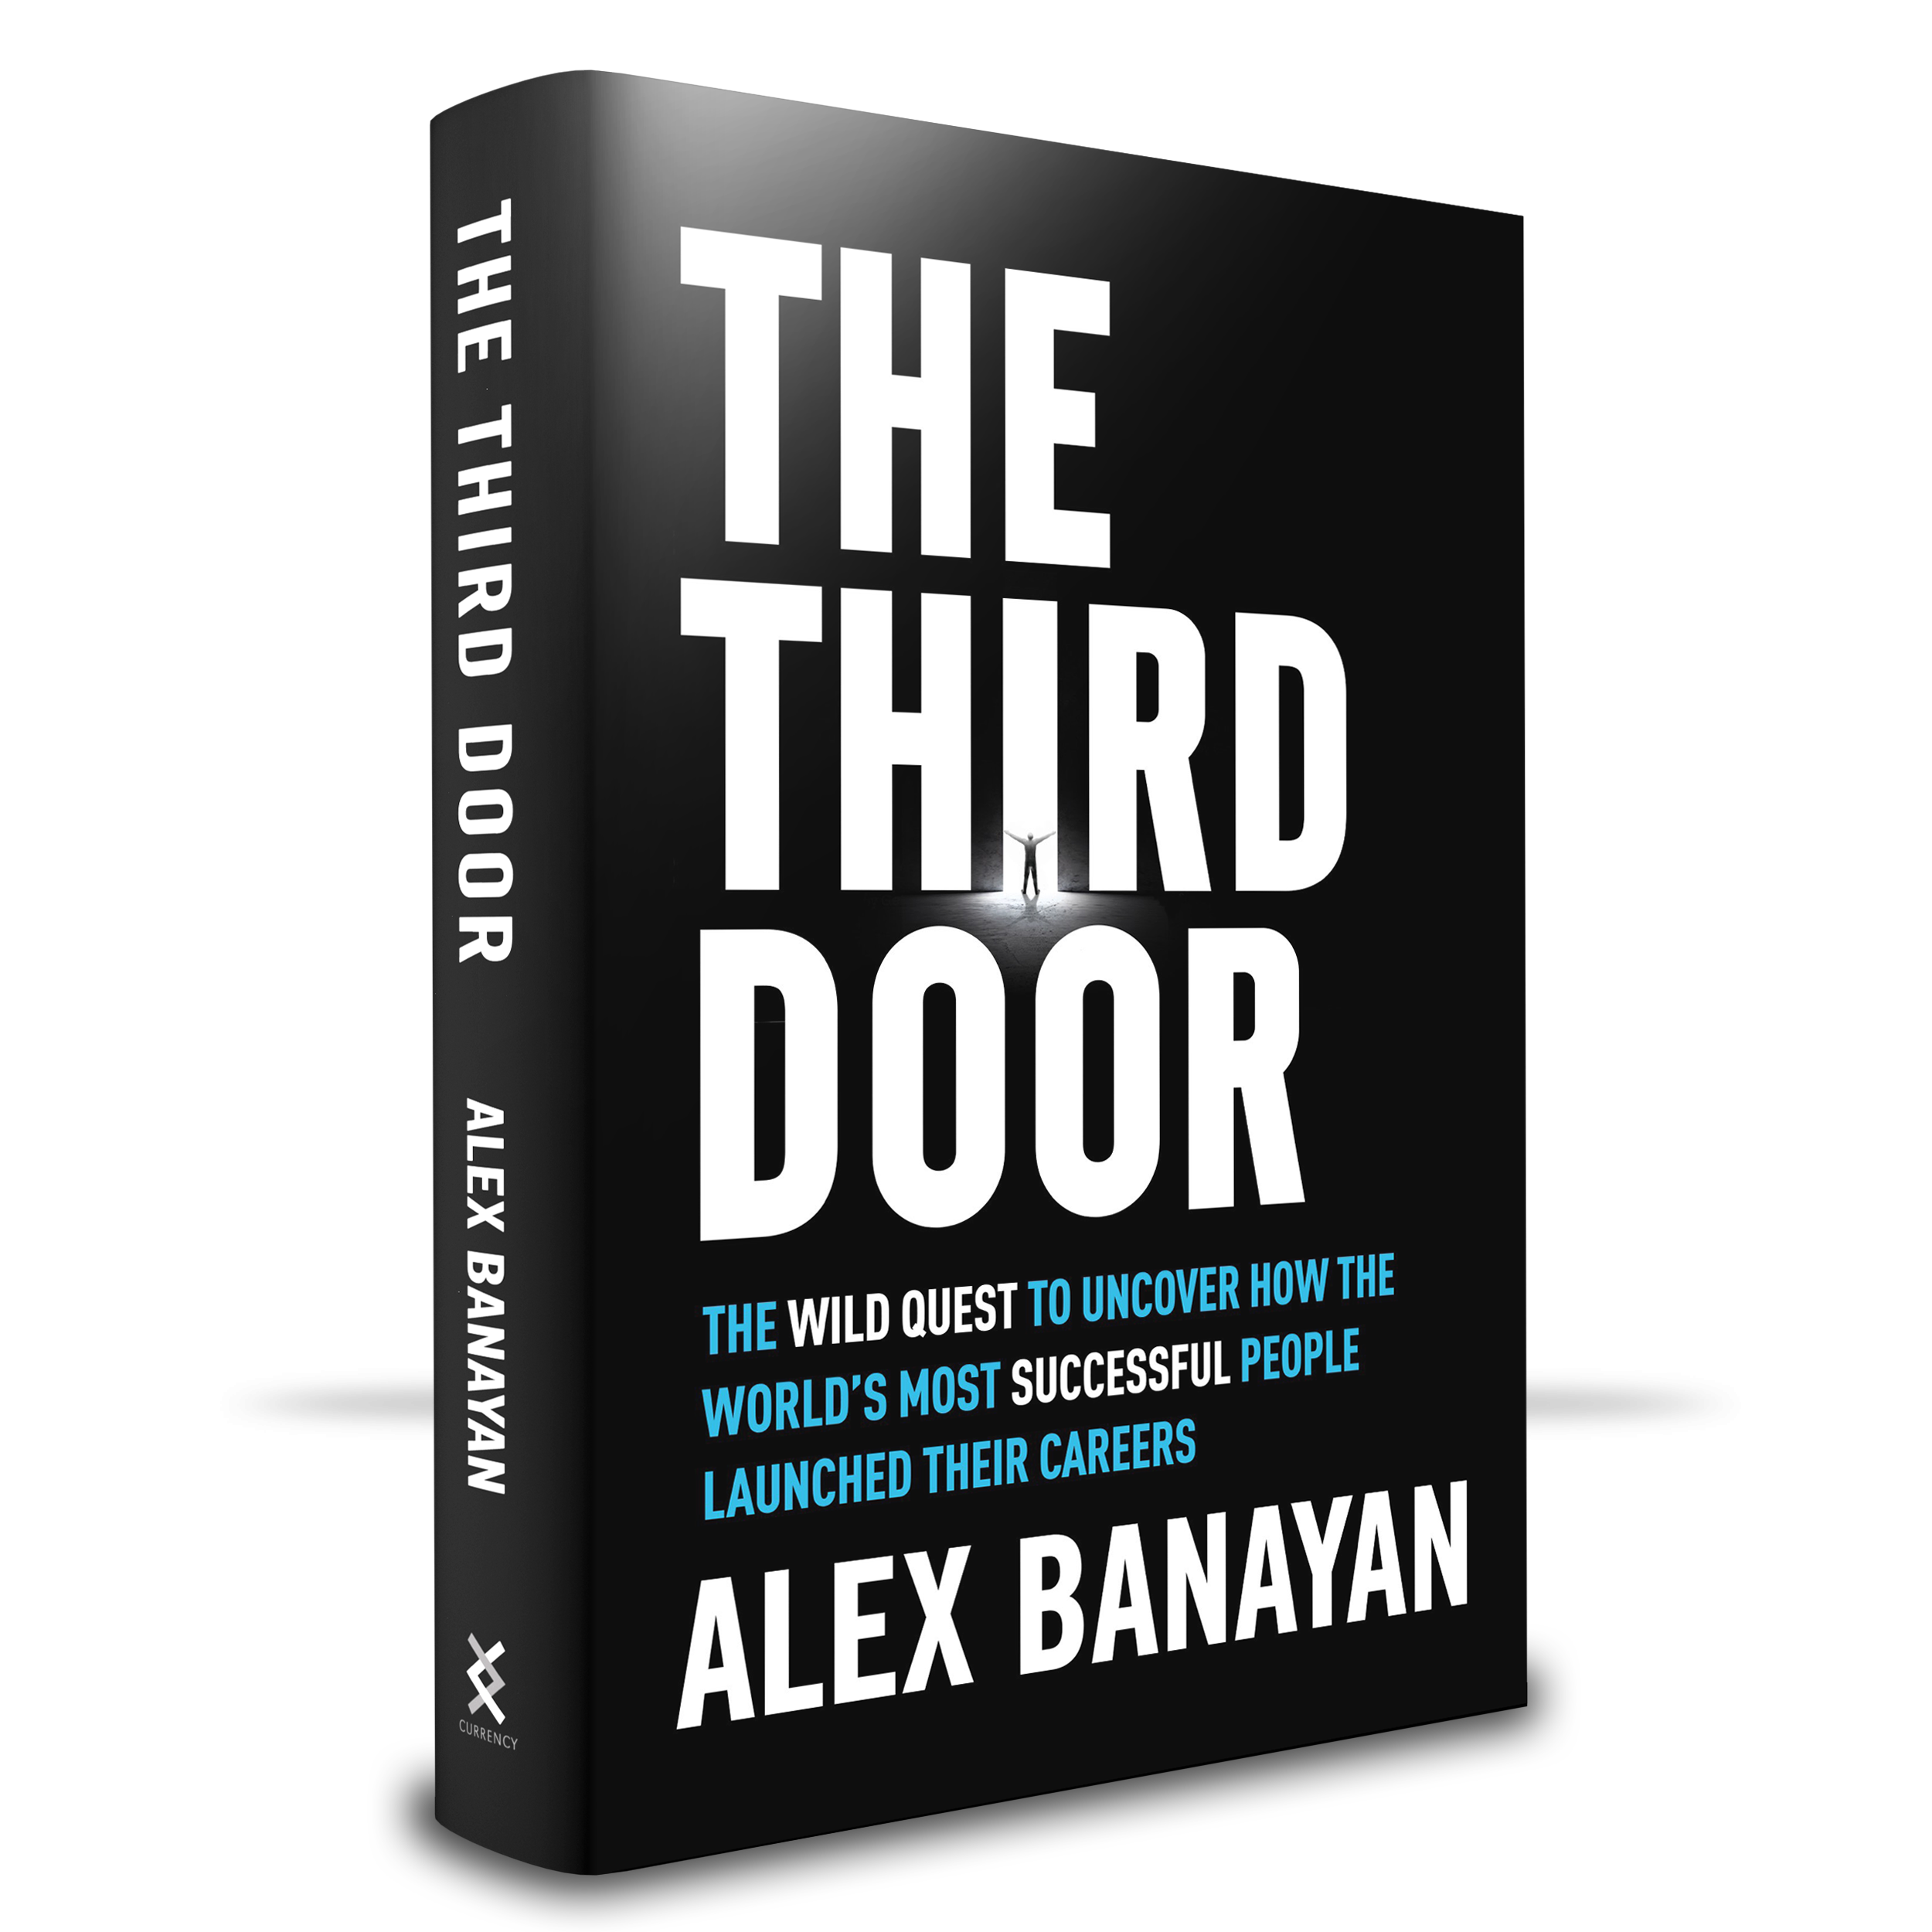 The Third Door Book Tour: Events, Signings, Readings, and More